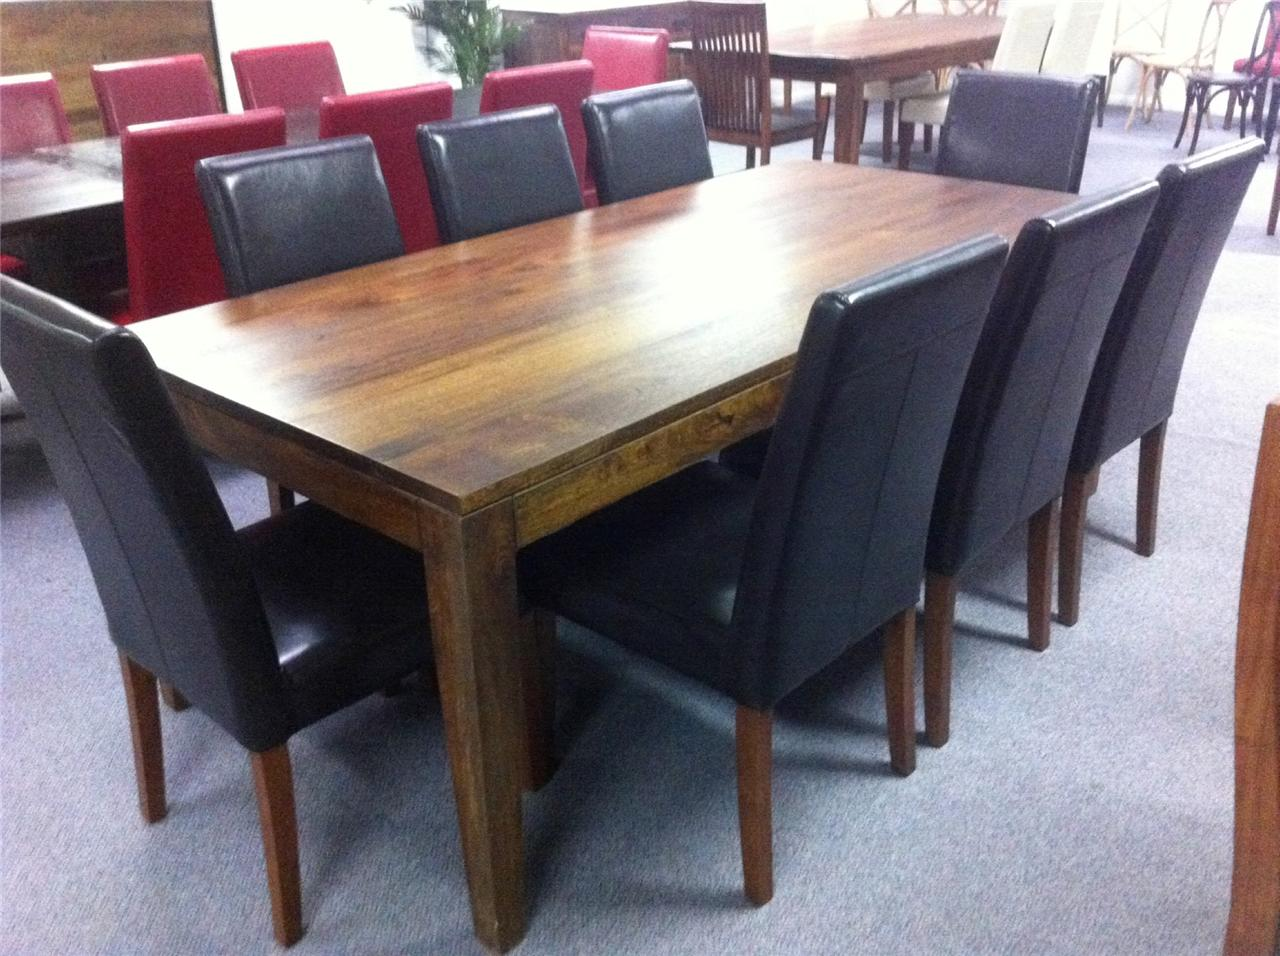 NEW-Avoca-Solid-Hardwood-Timber-Table-8-Chairs-9-Piece-Dining-Set-Package